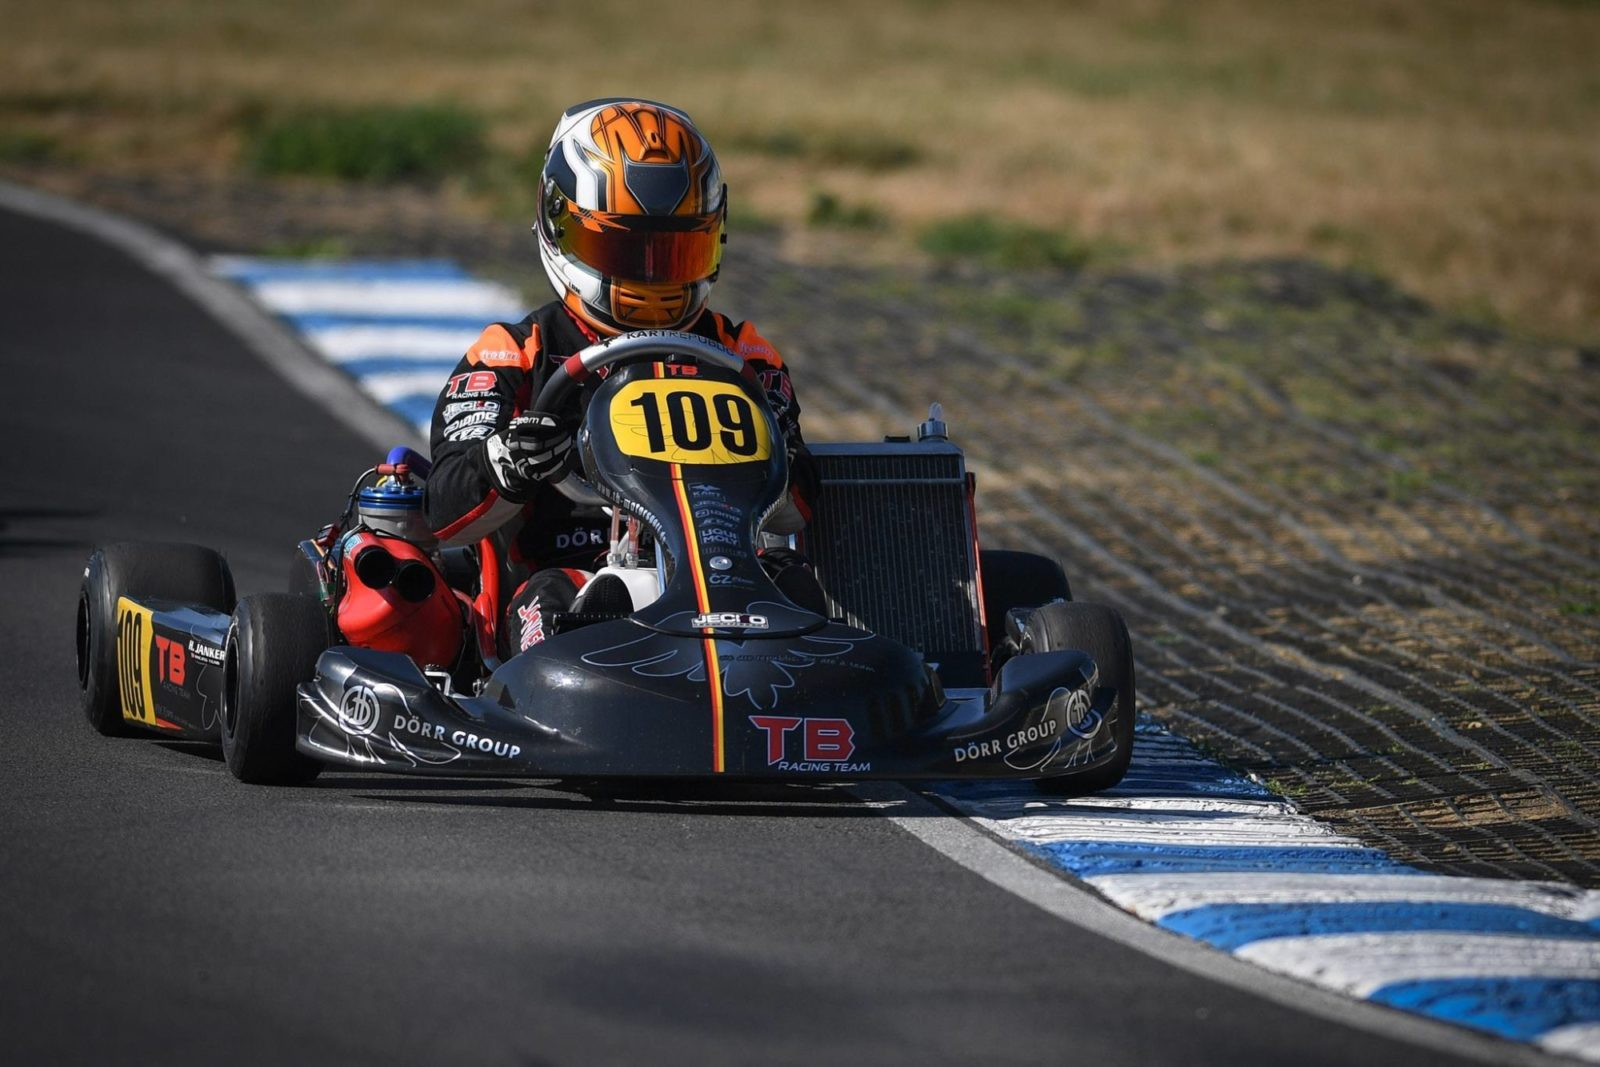 Hannes Janker aboard his Kart Republic machine